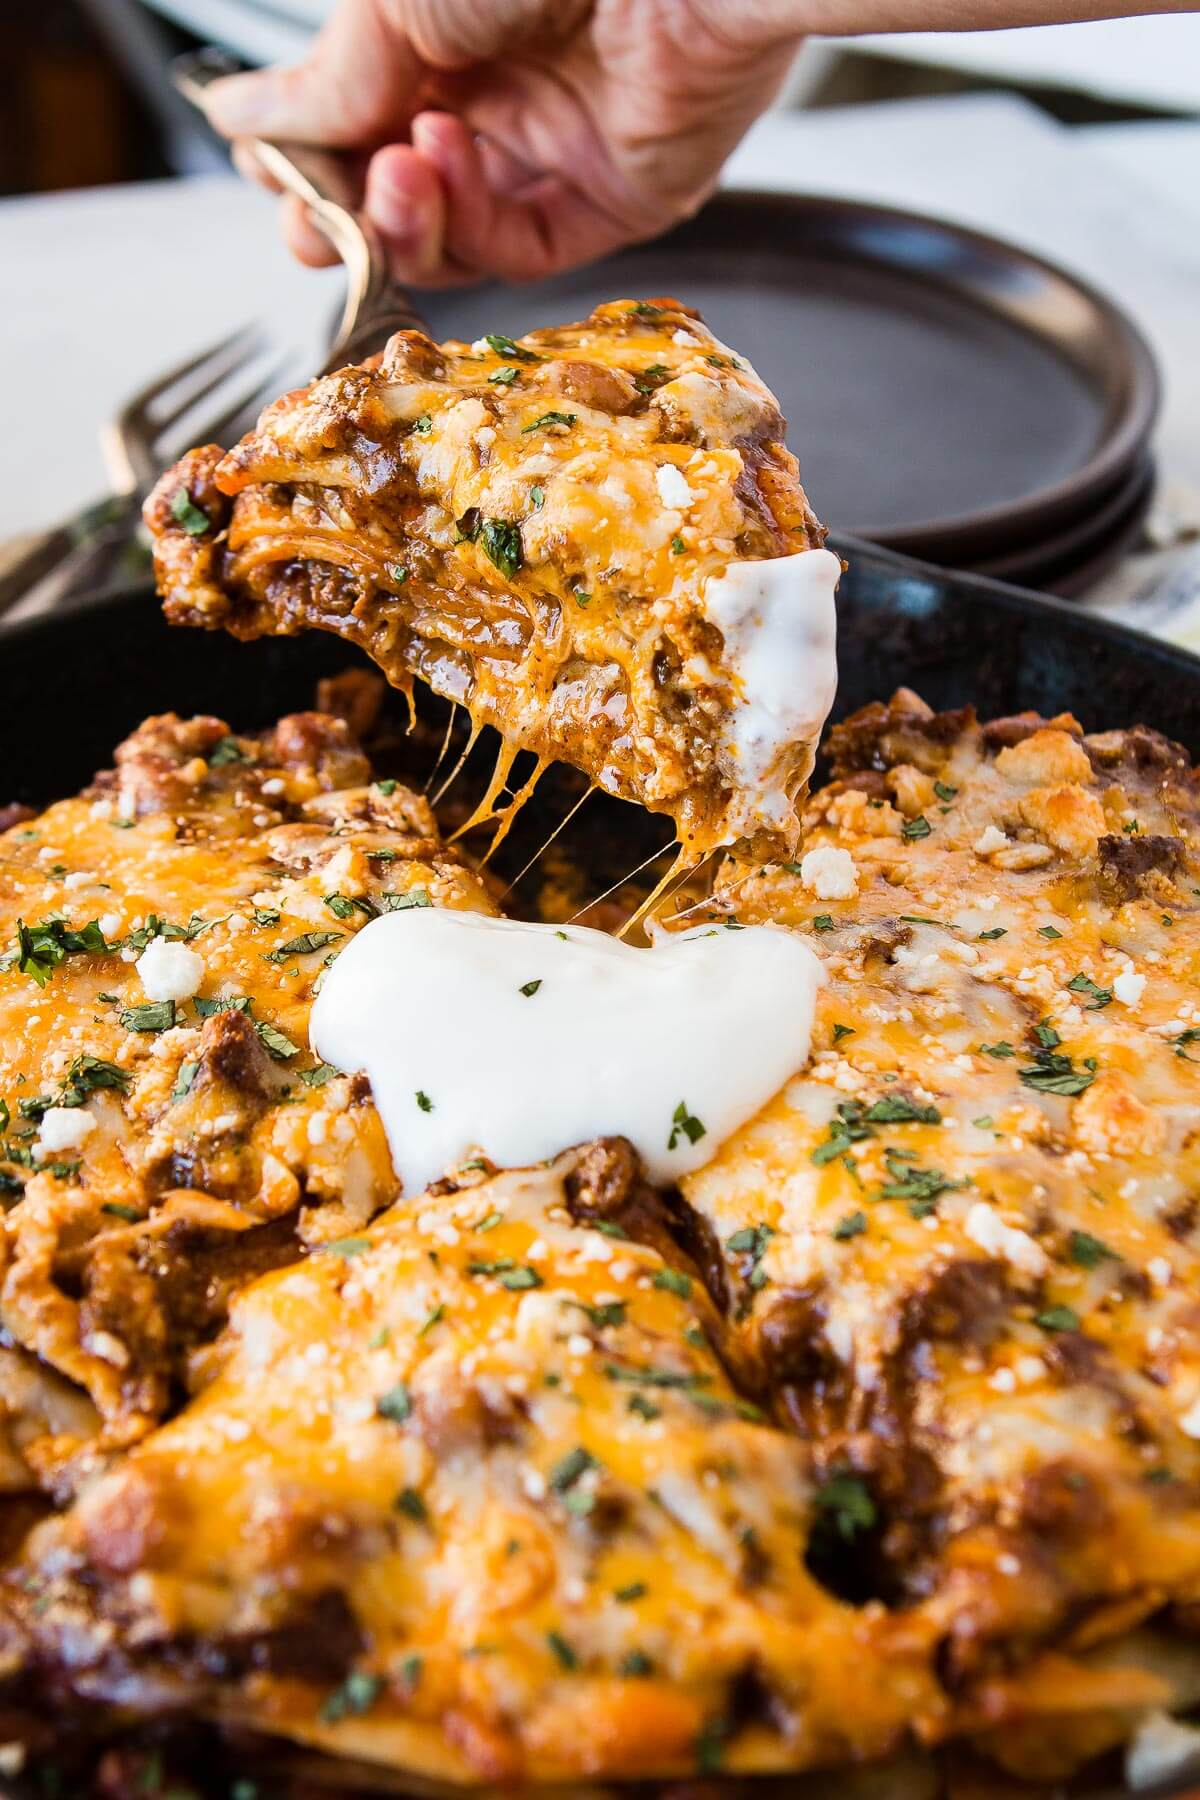 Looking for an easy enchiladas recipe? This one skillet enchilada casserole has everything you love about enchiladas without all the time it takes to roll them! ohsweetbasil.com